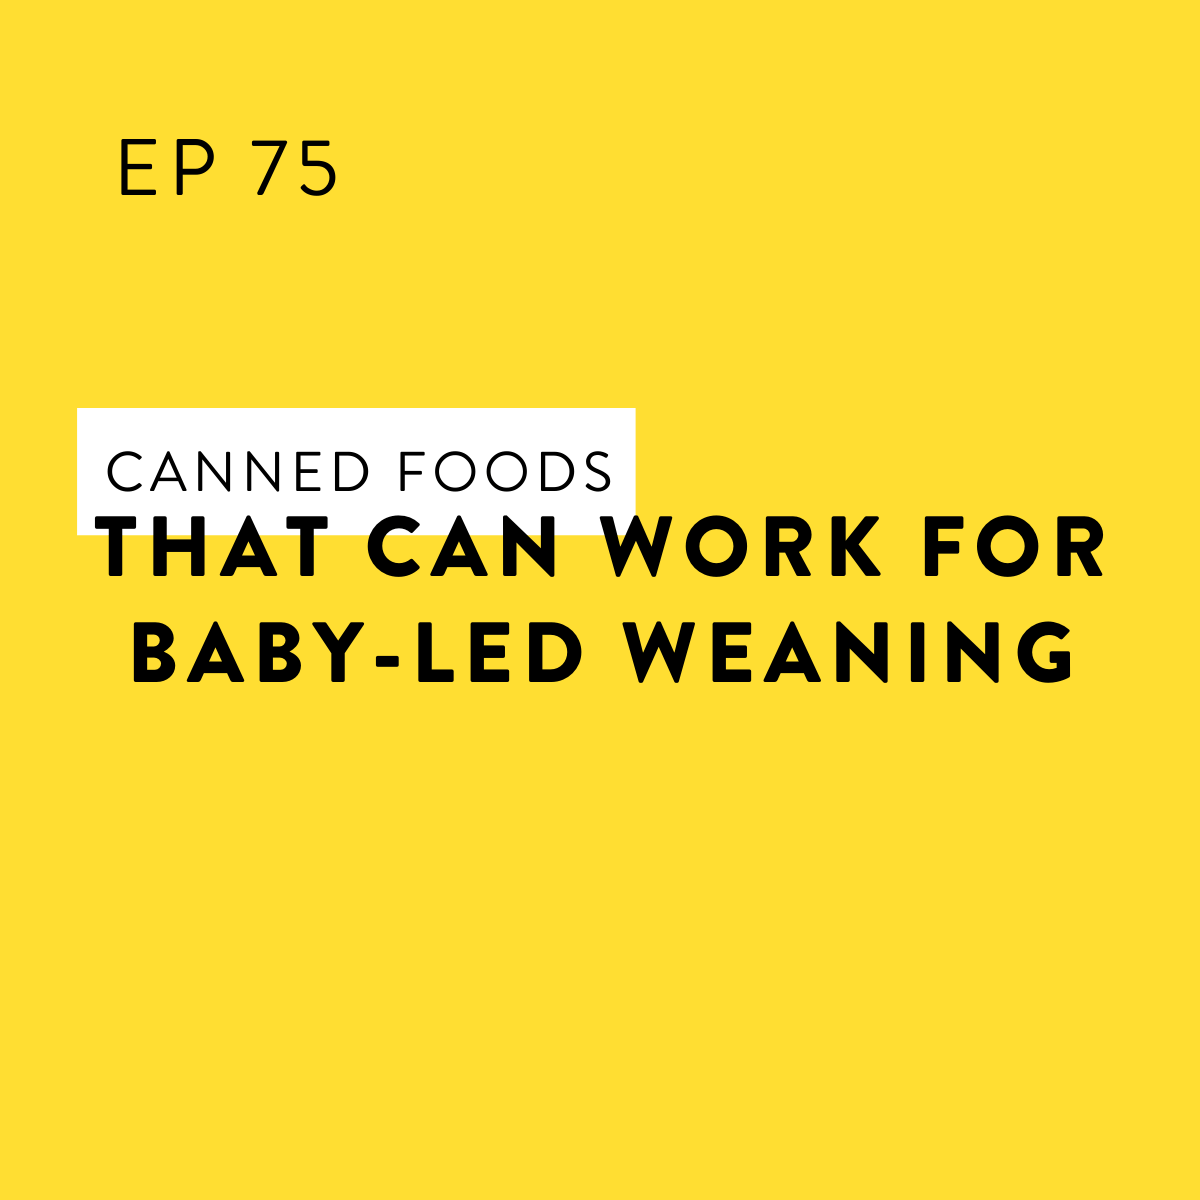 Canned Foods that CAN Work for Baby-Led Weaning